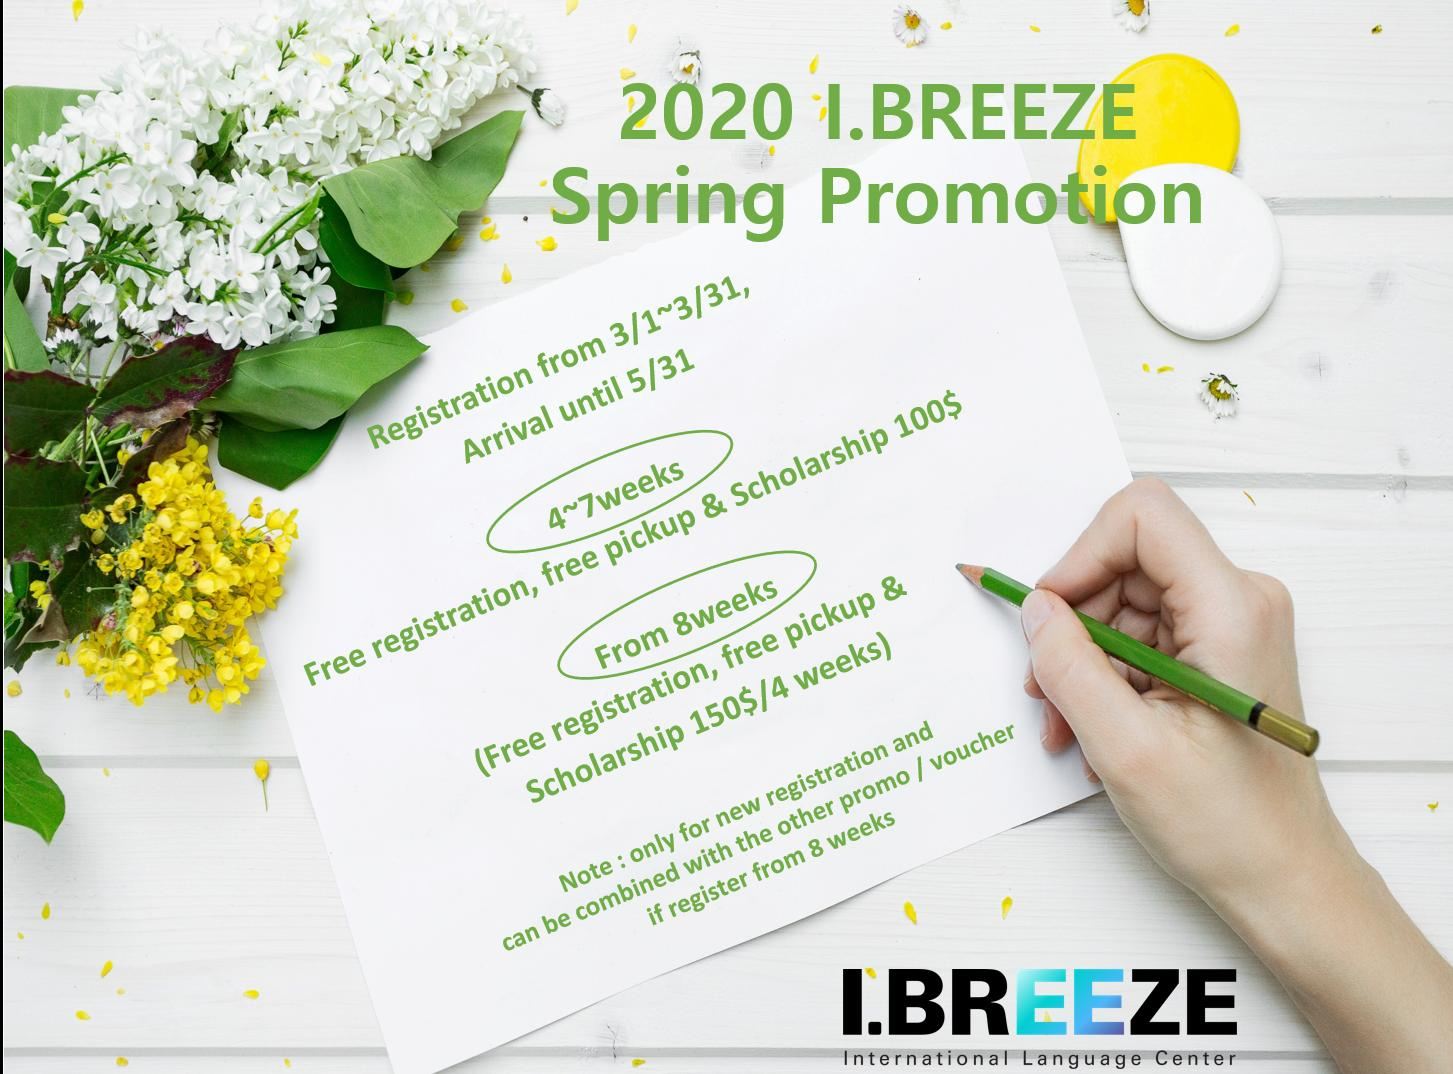 [I.BREEZE] SPRING PROMOTION 2020